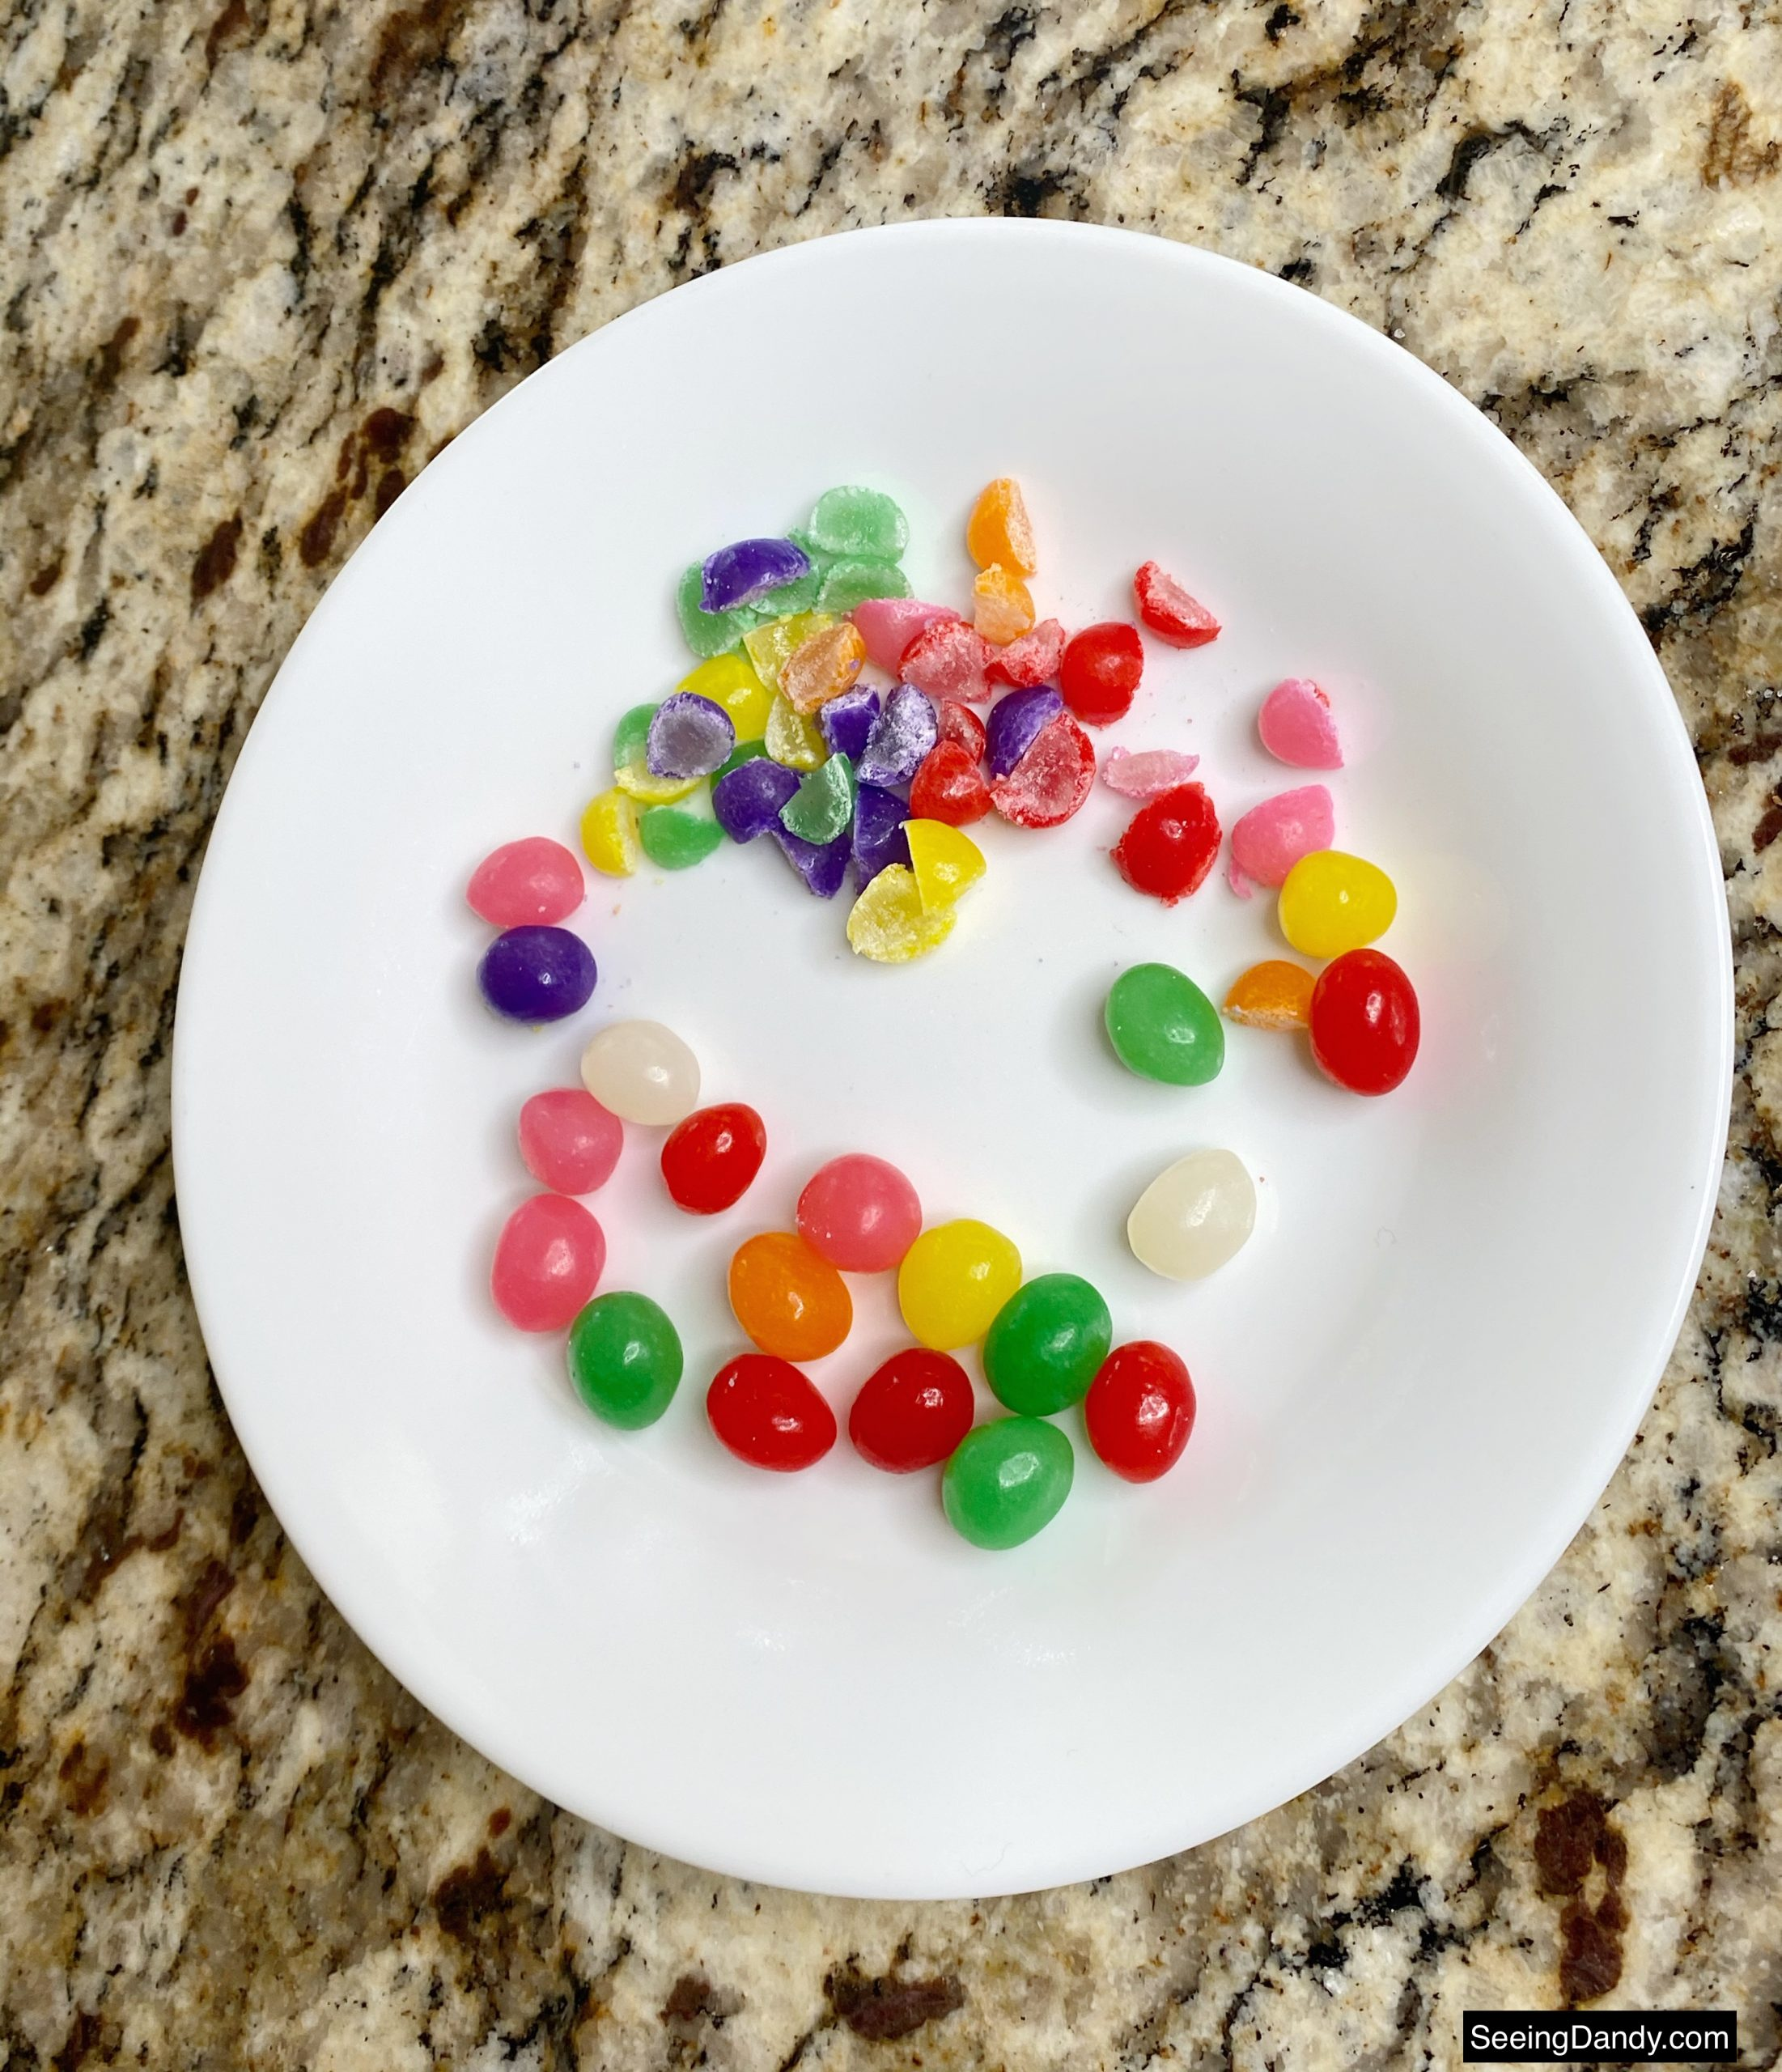 brachs jelly beans, granite countertop, brachs easter candy, white dessert plate